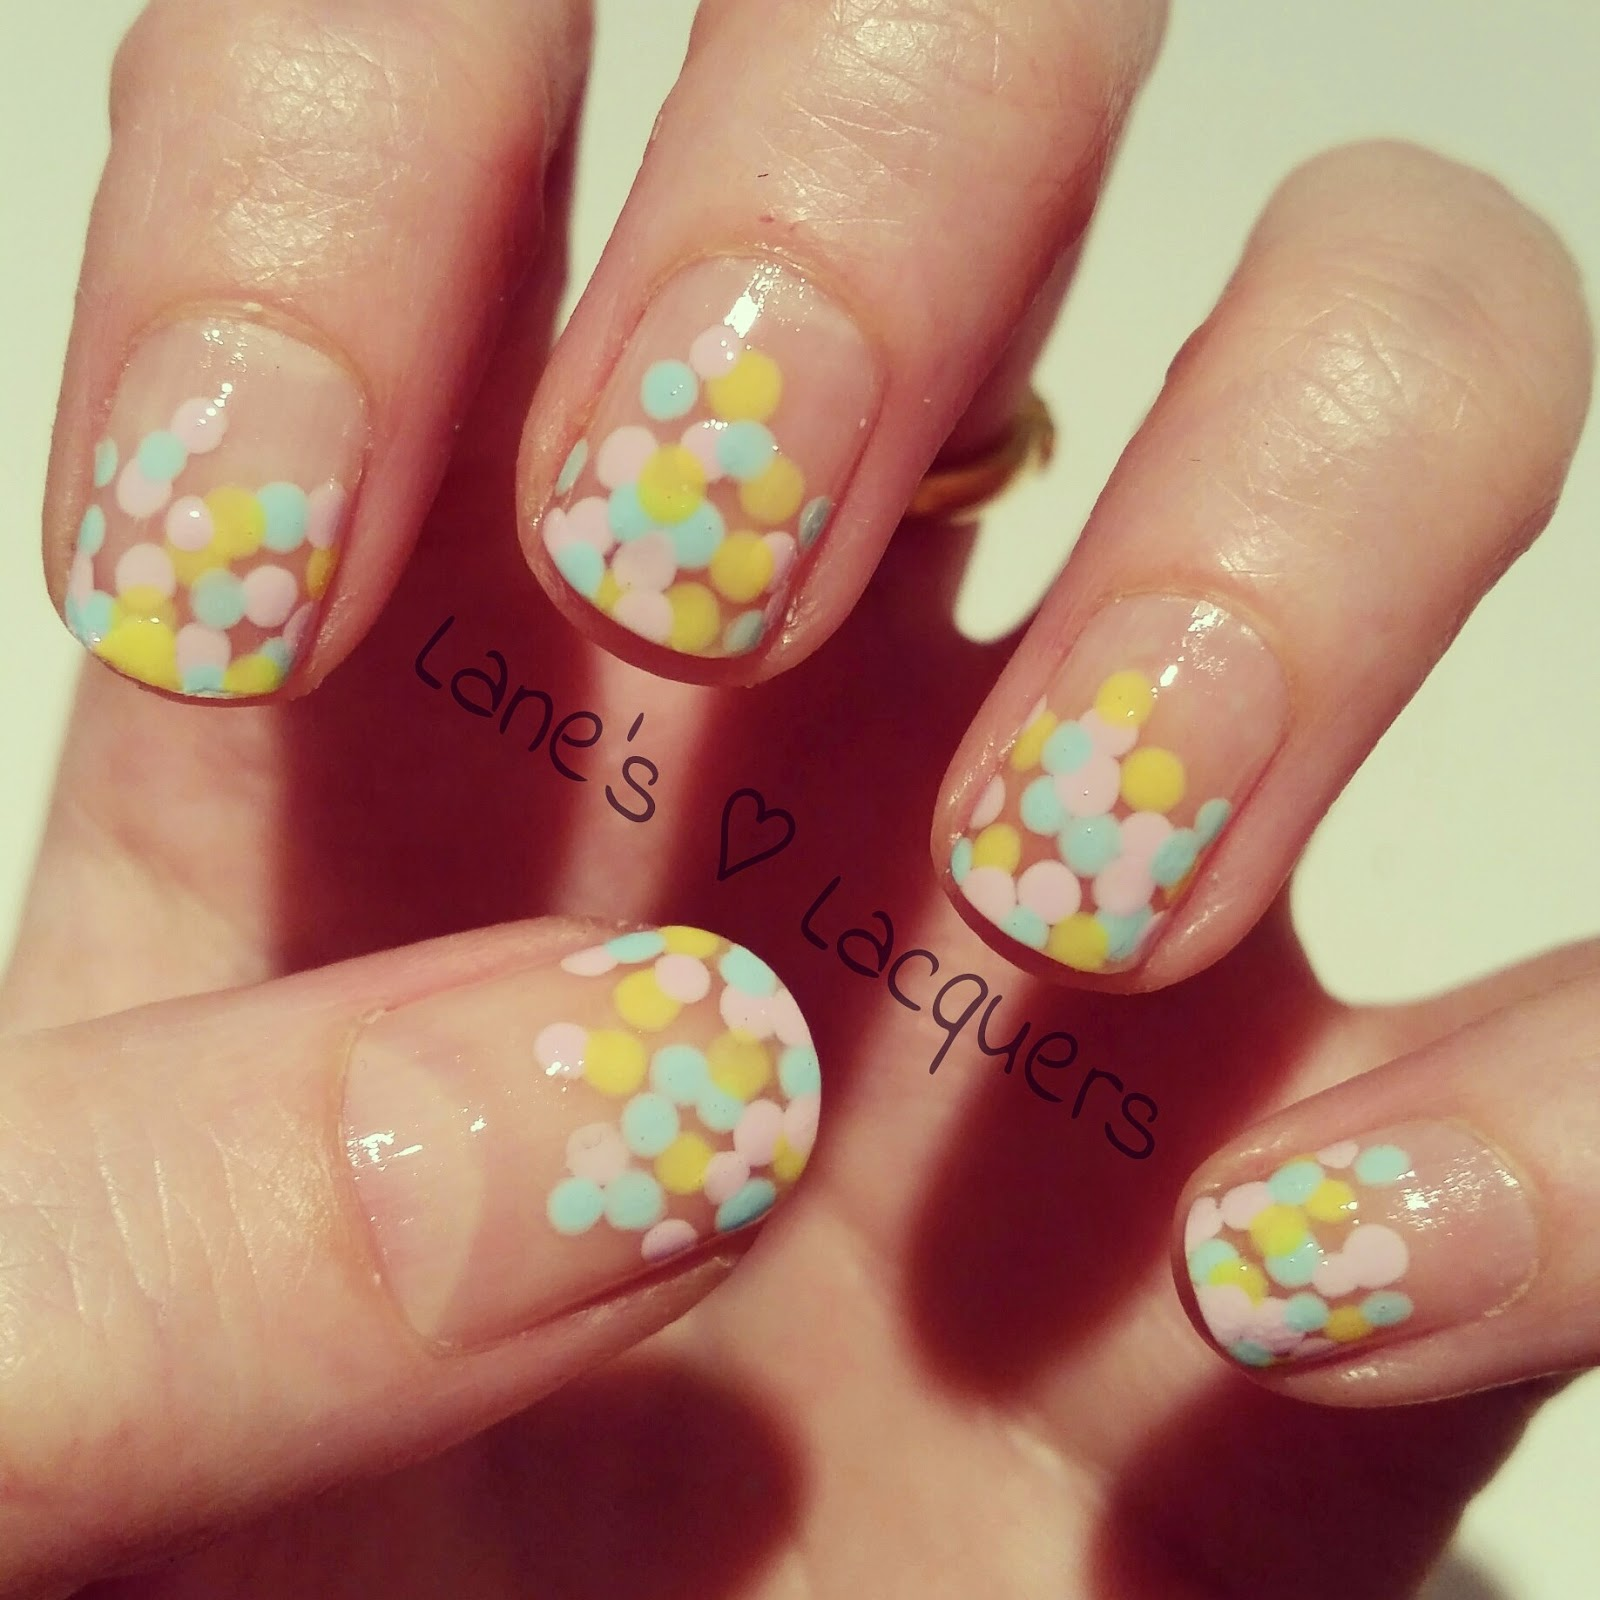 barry-m-negative-space-pastel-dotticure-nail-art